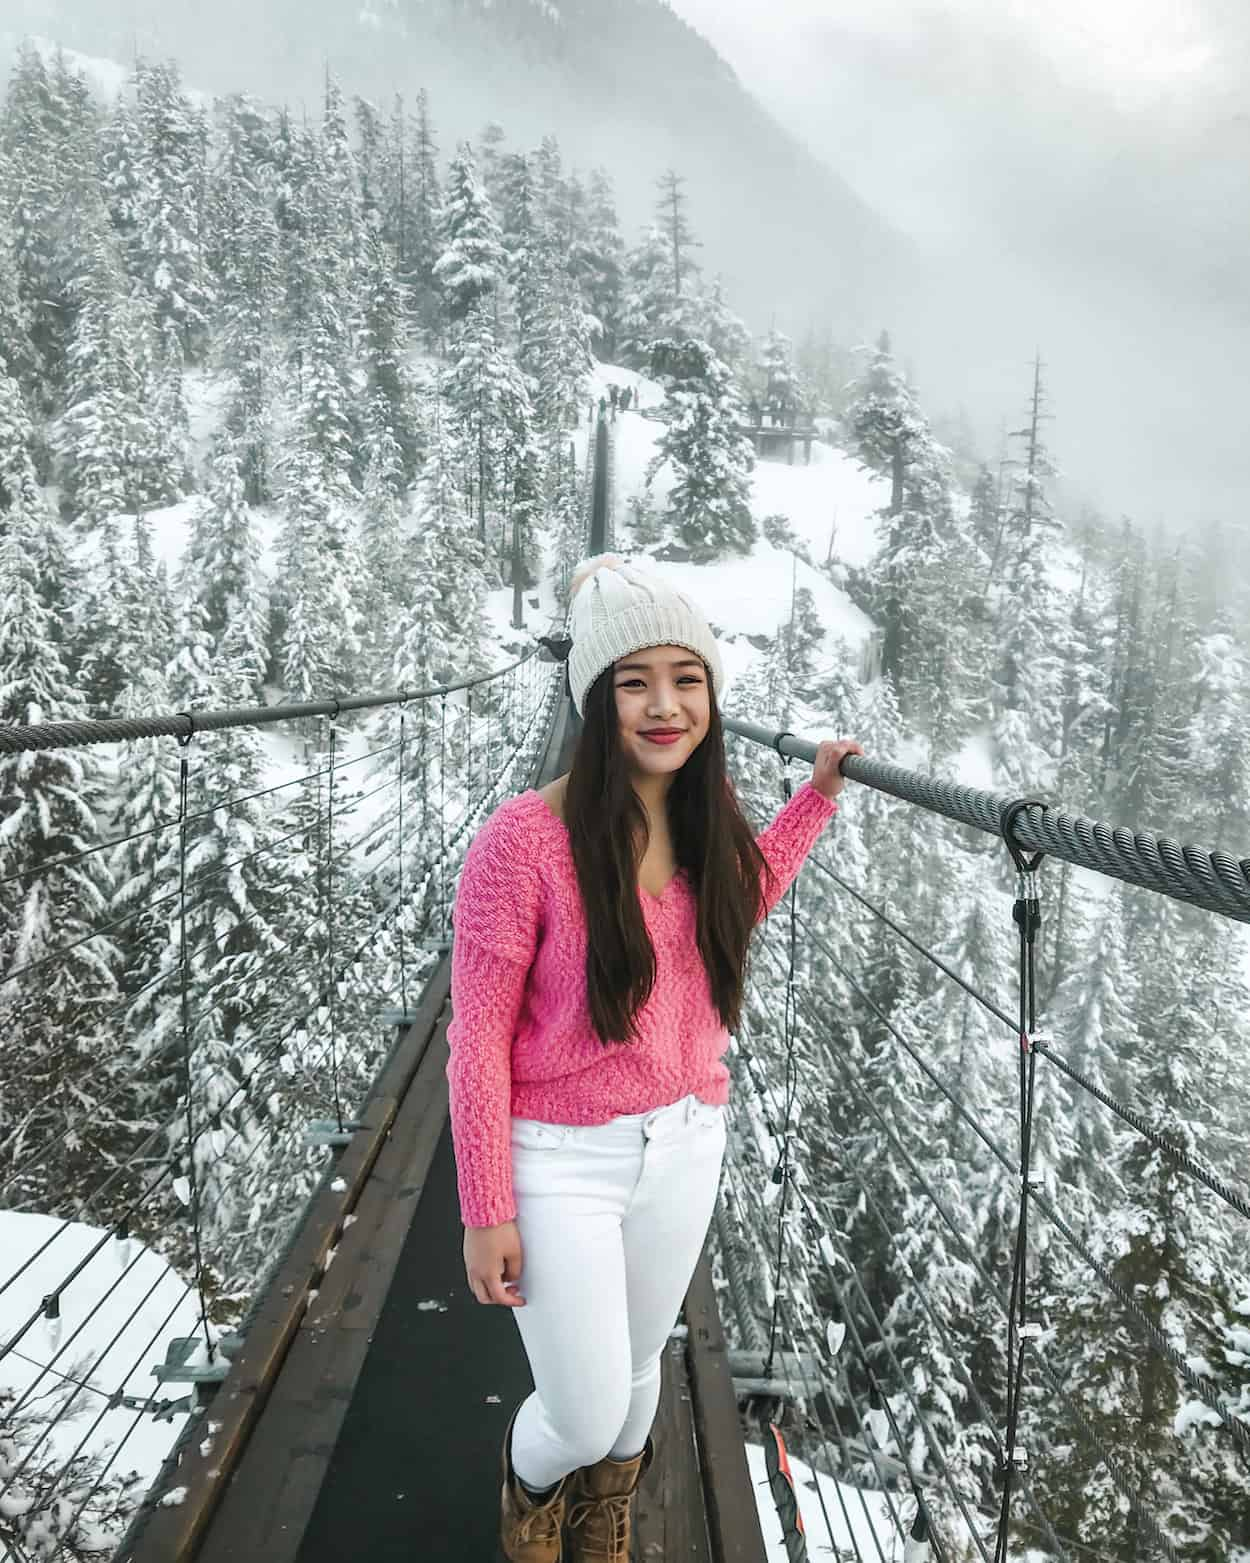 A snowy winter view from the top of the Sea to Sky Gondola in Squamish, British Columbia